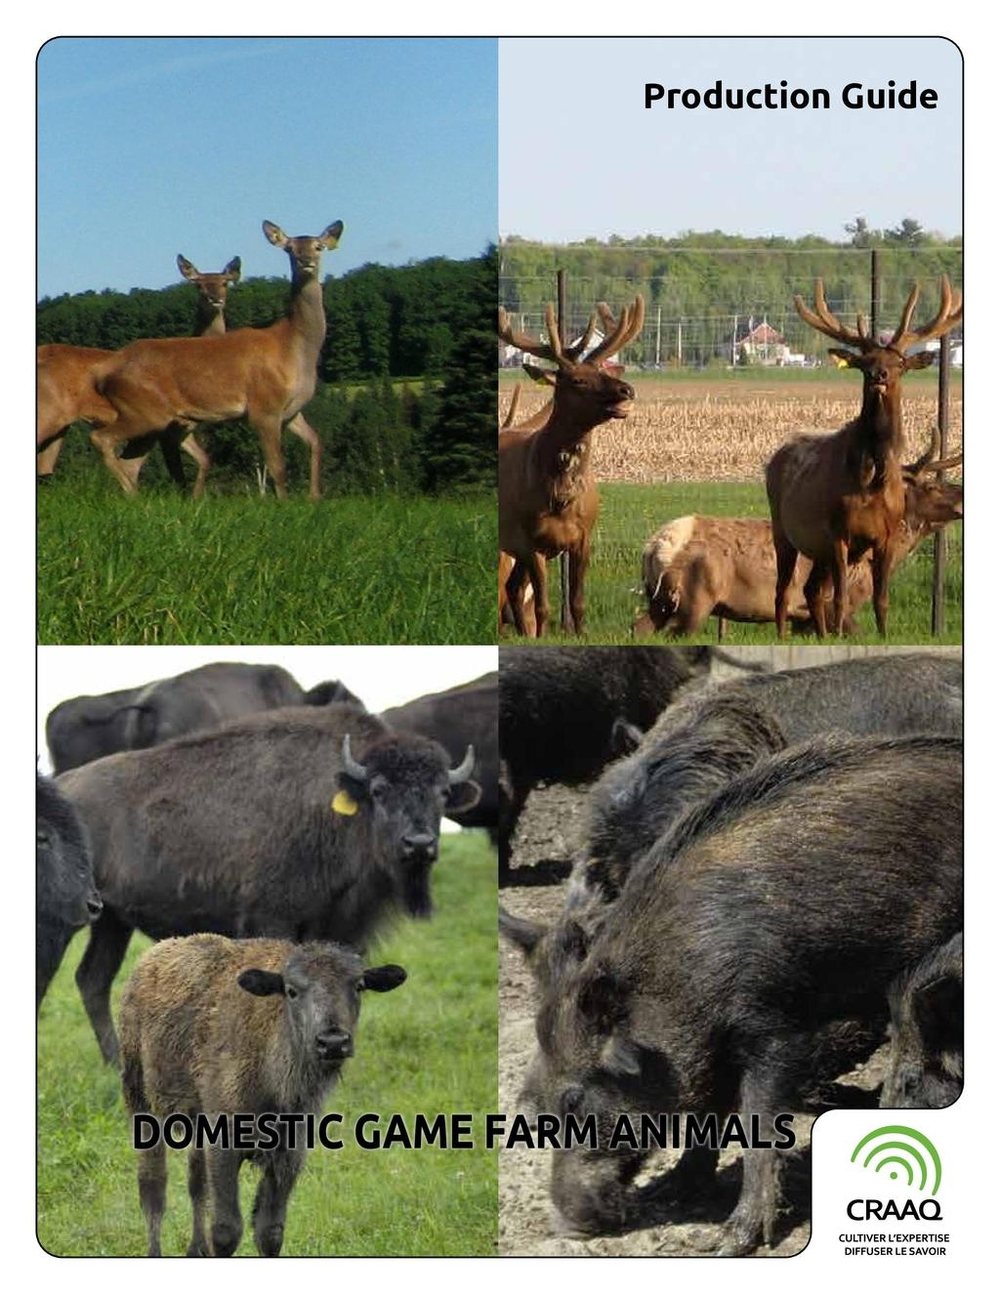 Domestic Game Farm Animals Production Guide